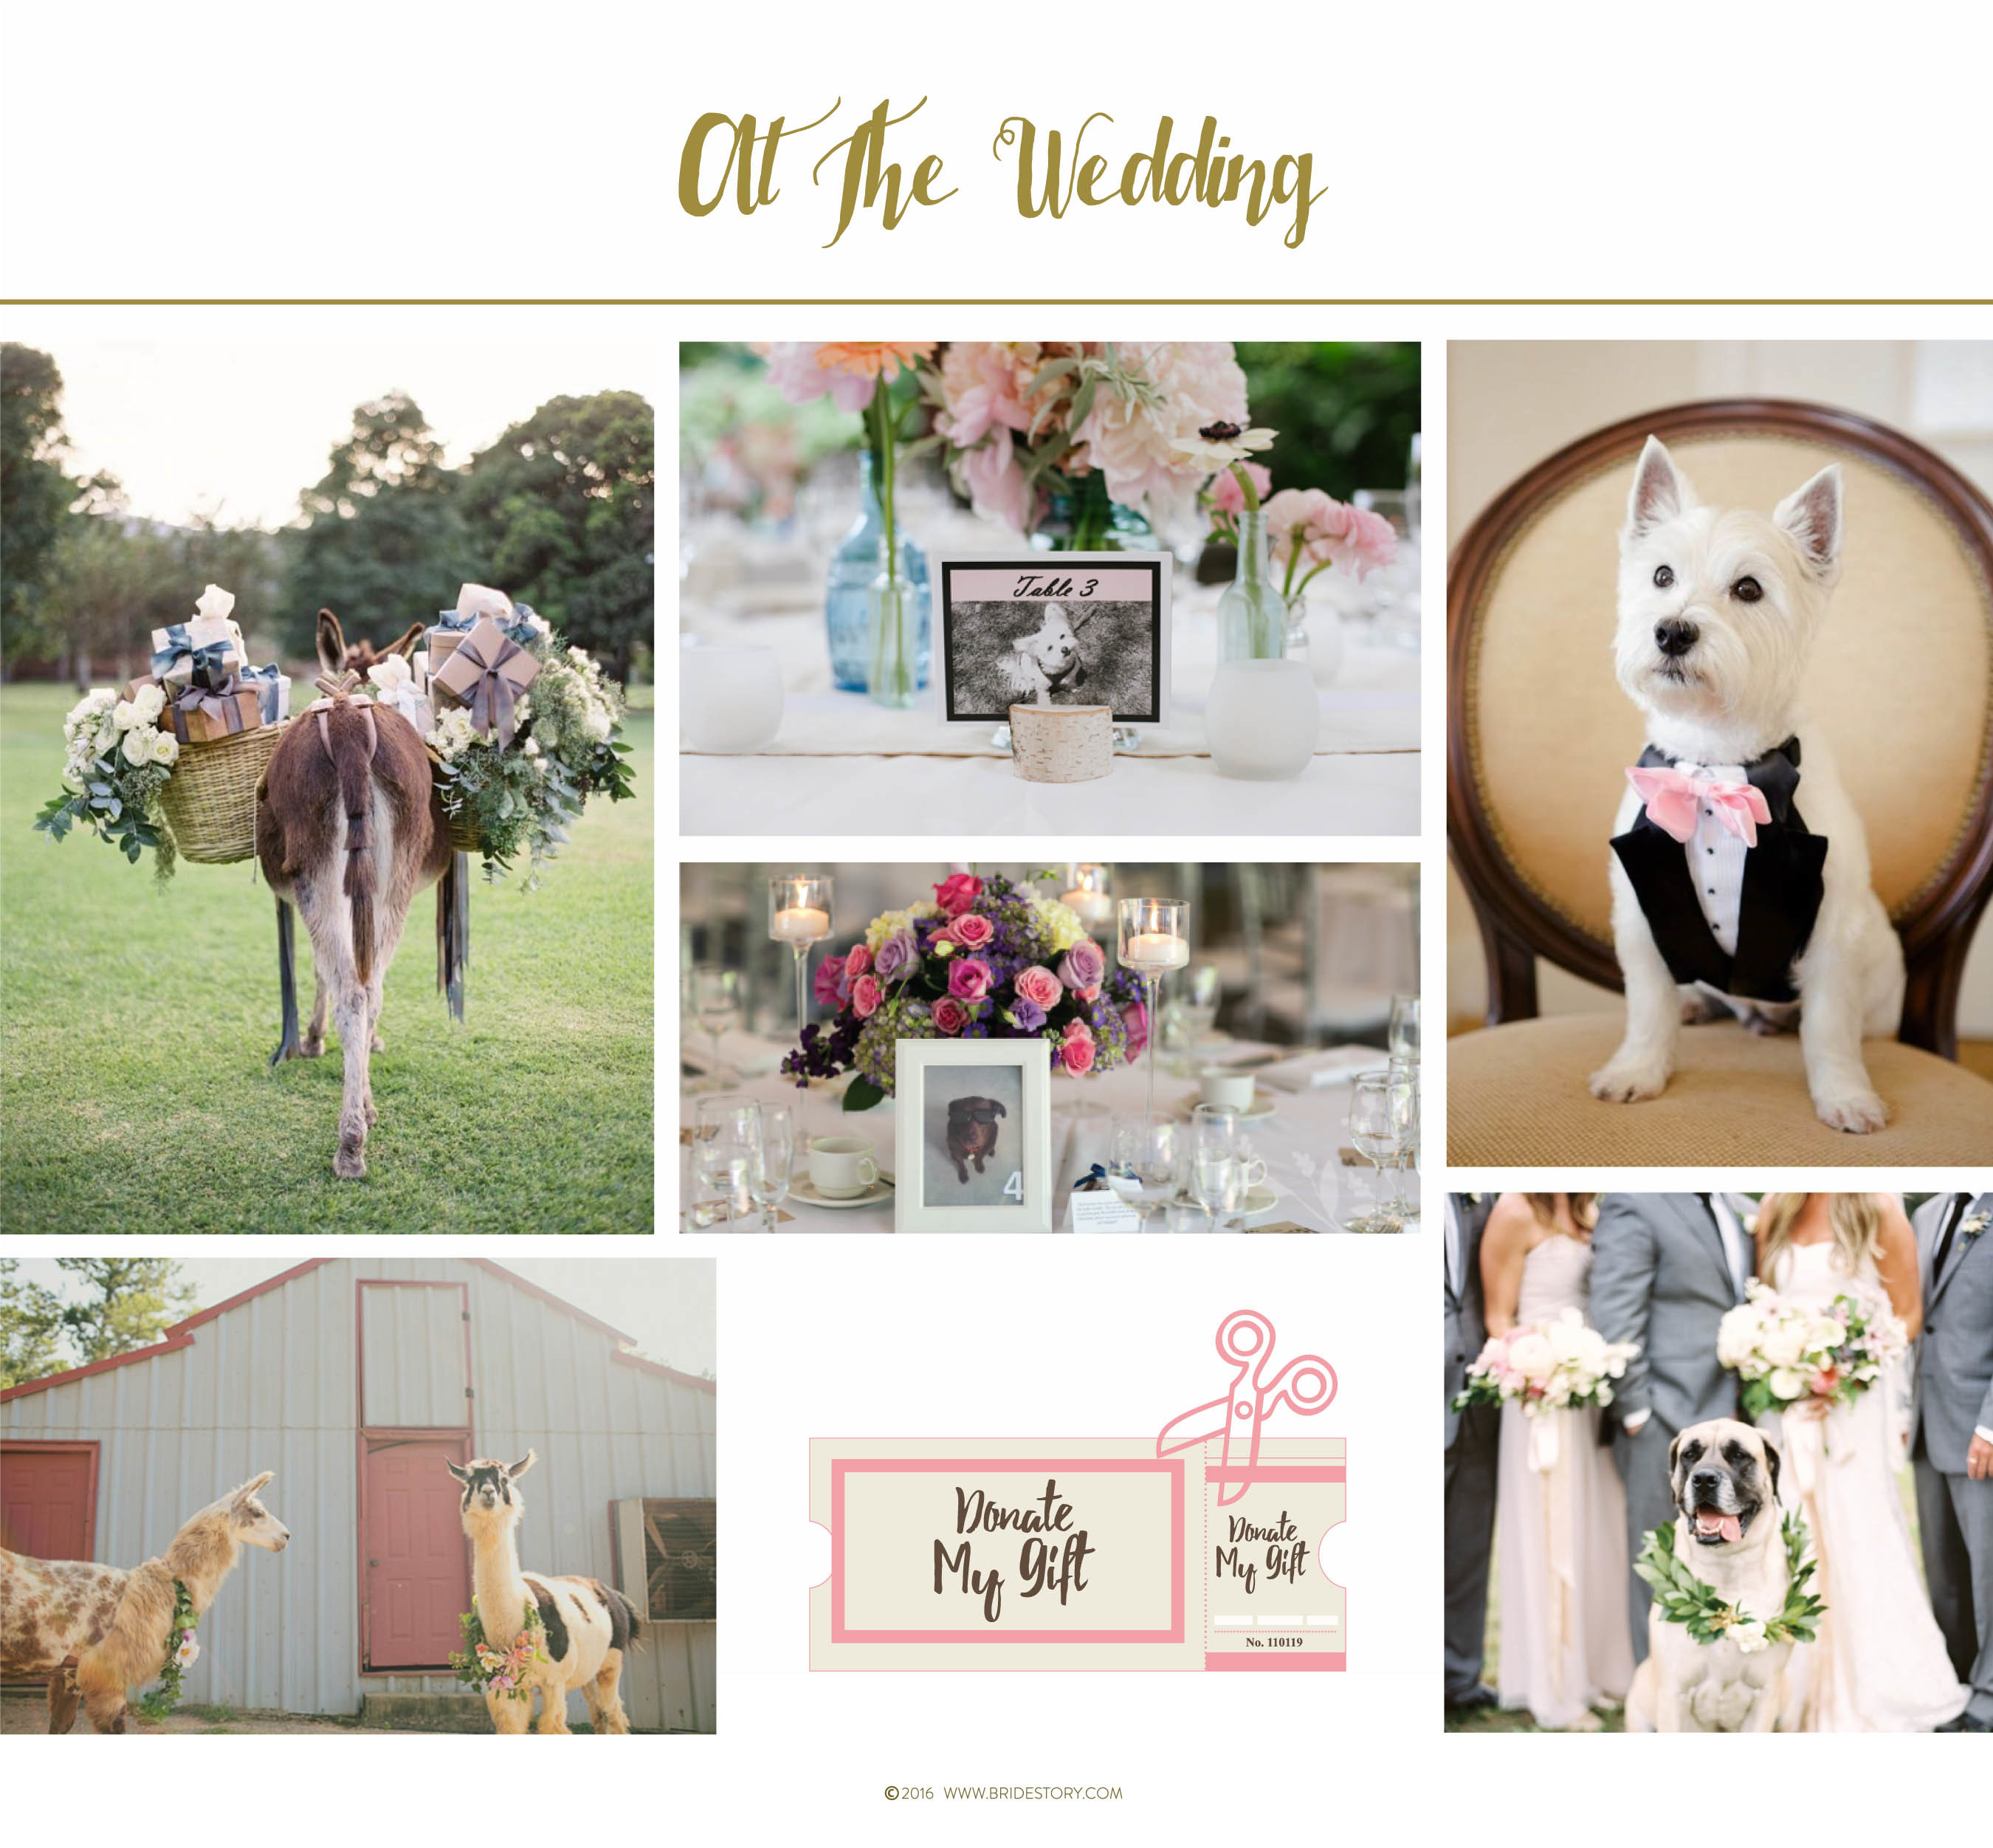 How to Involve Pets in Your Wedding Image 2